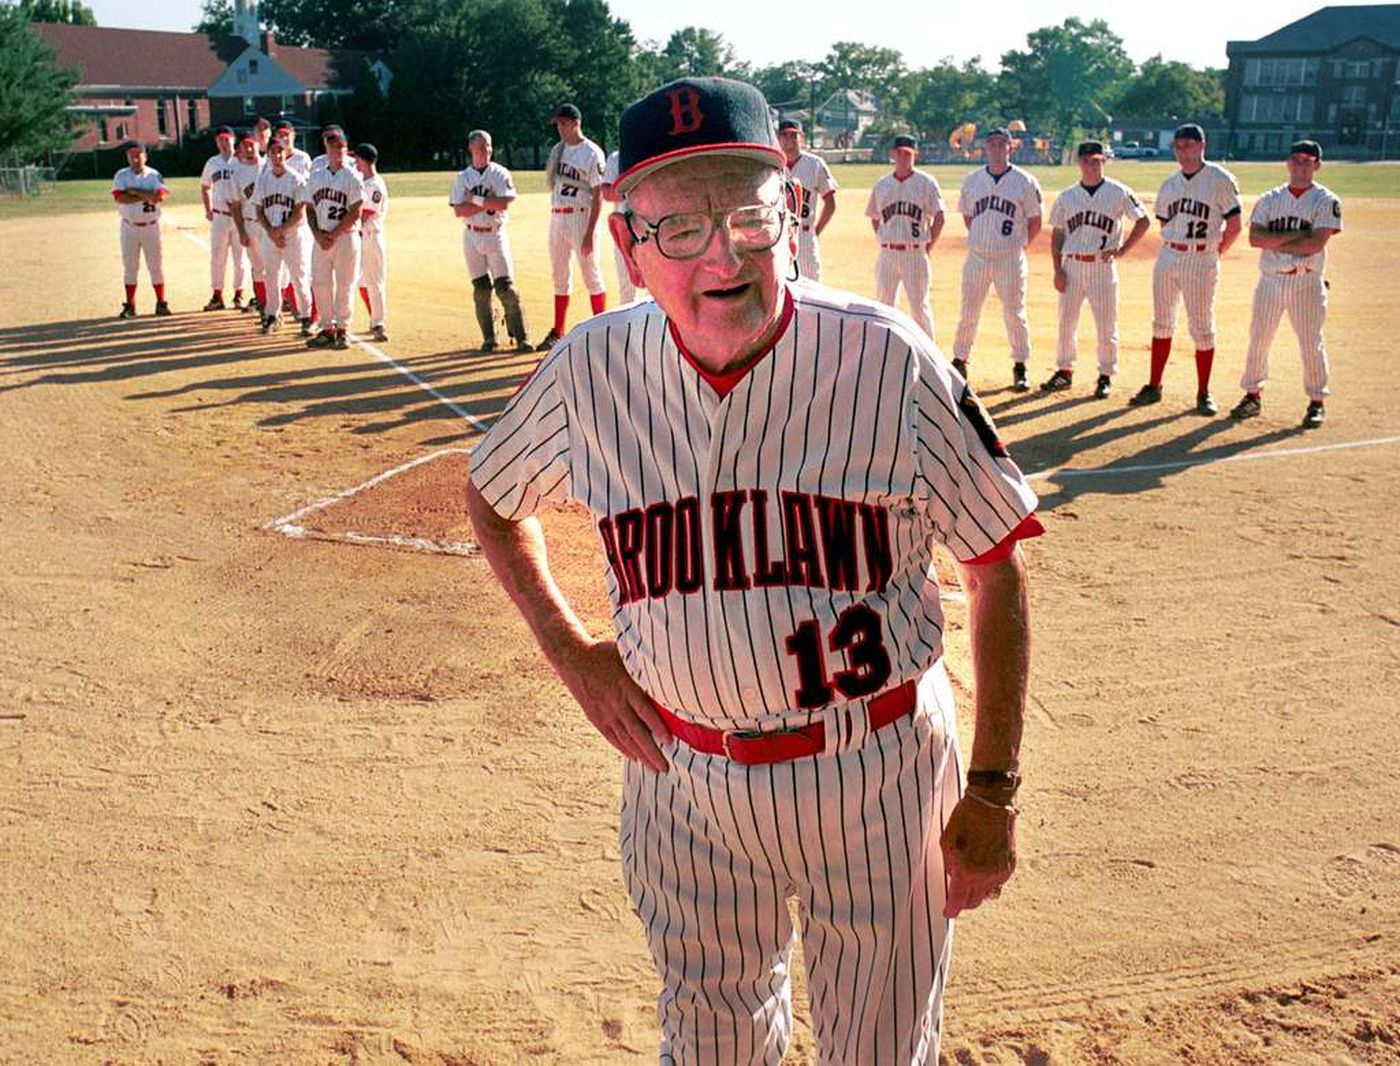 American Legion baseball: The summer tradition slowly fading